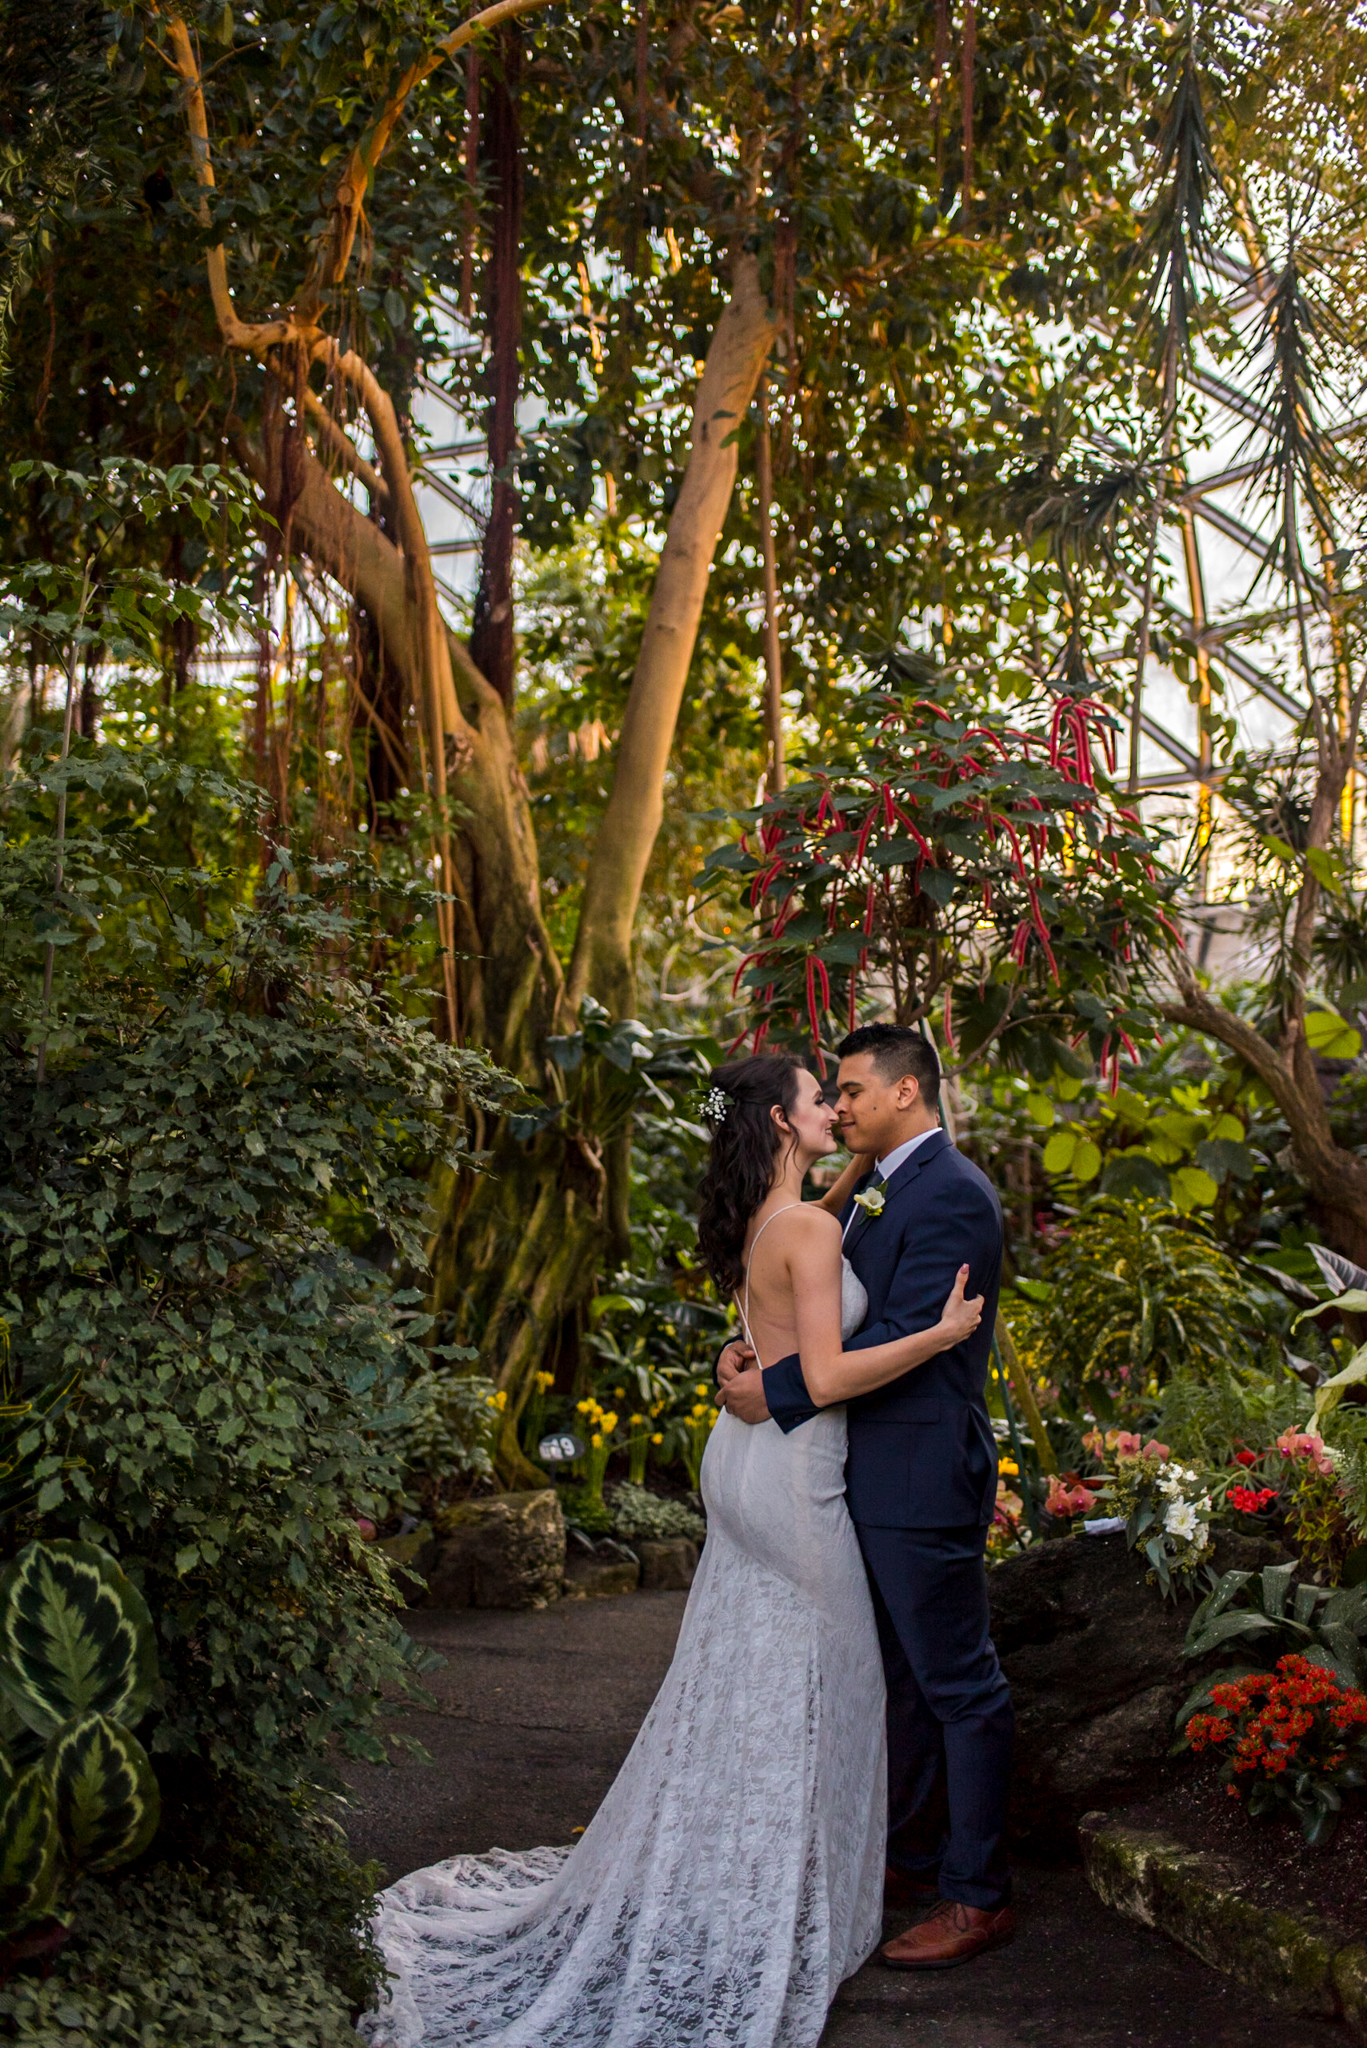 Queen Elizabeth Park Wedding Photographer-65.jpg